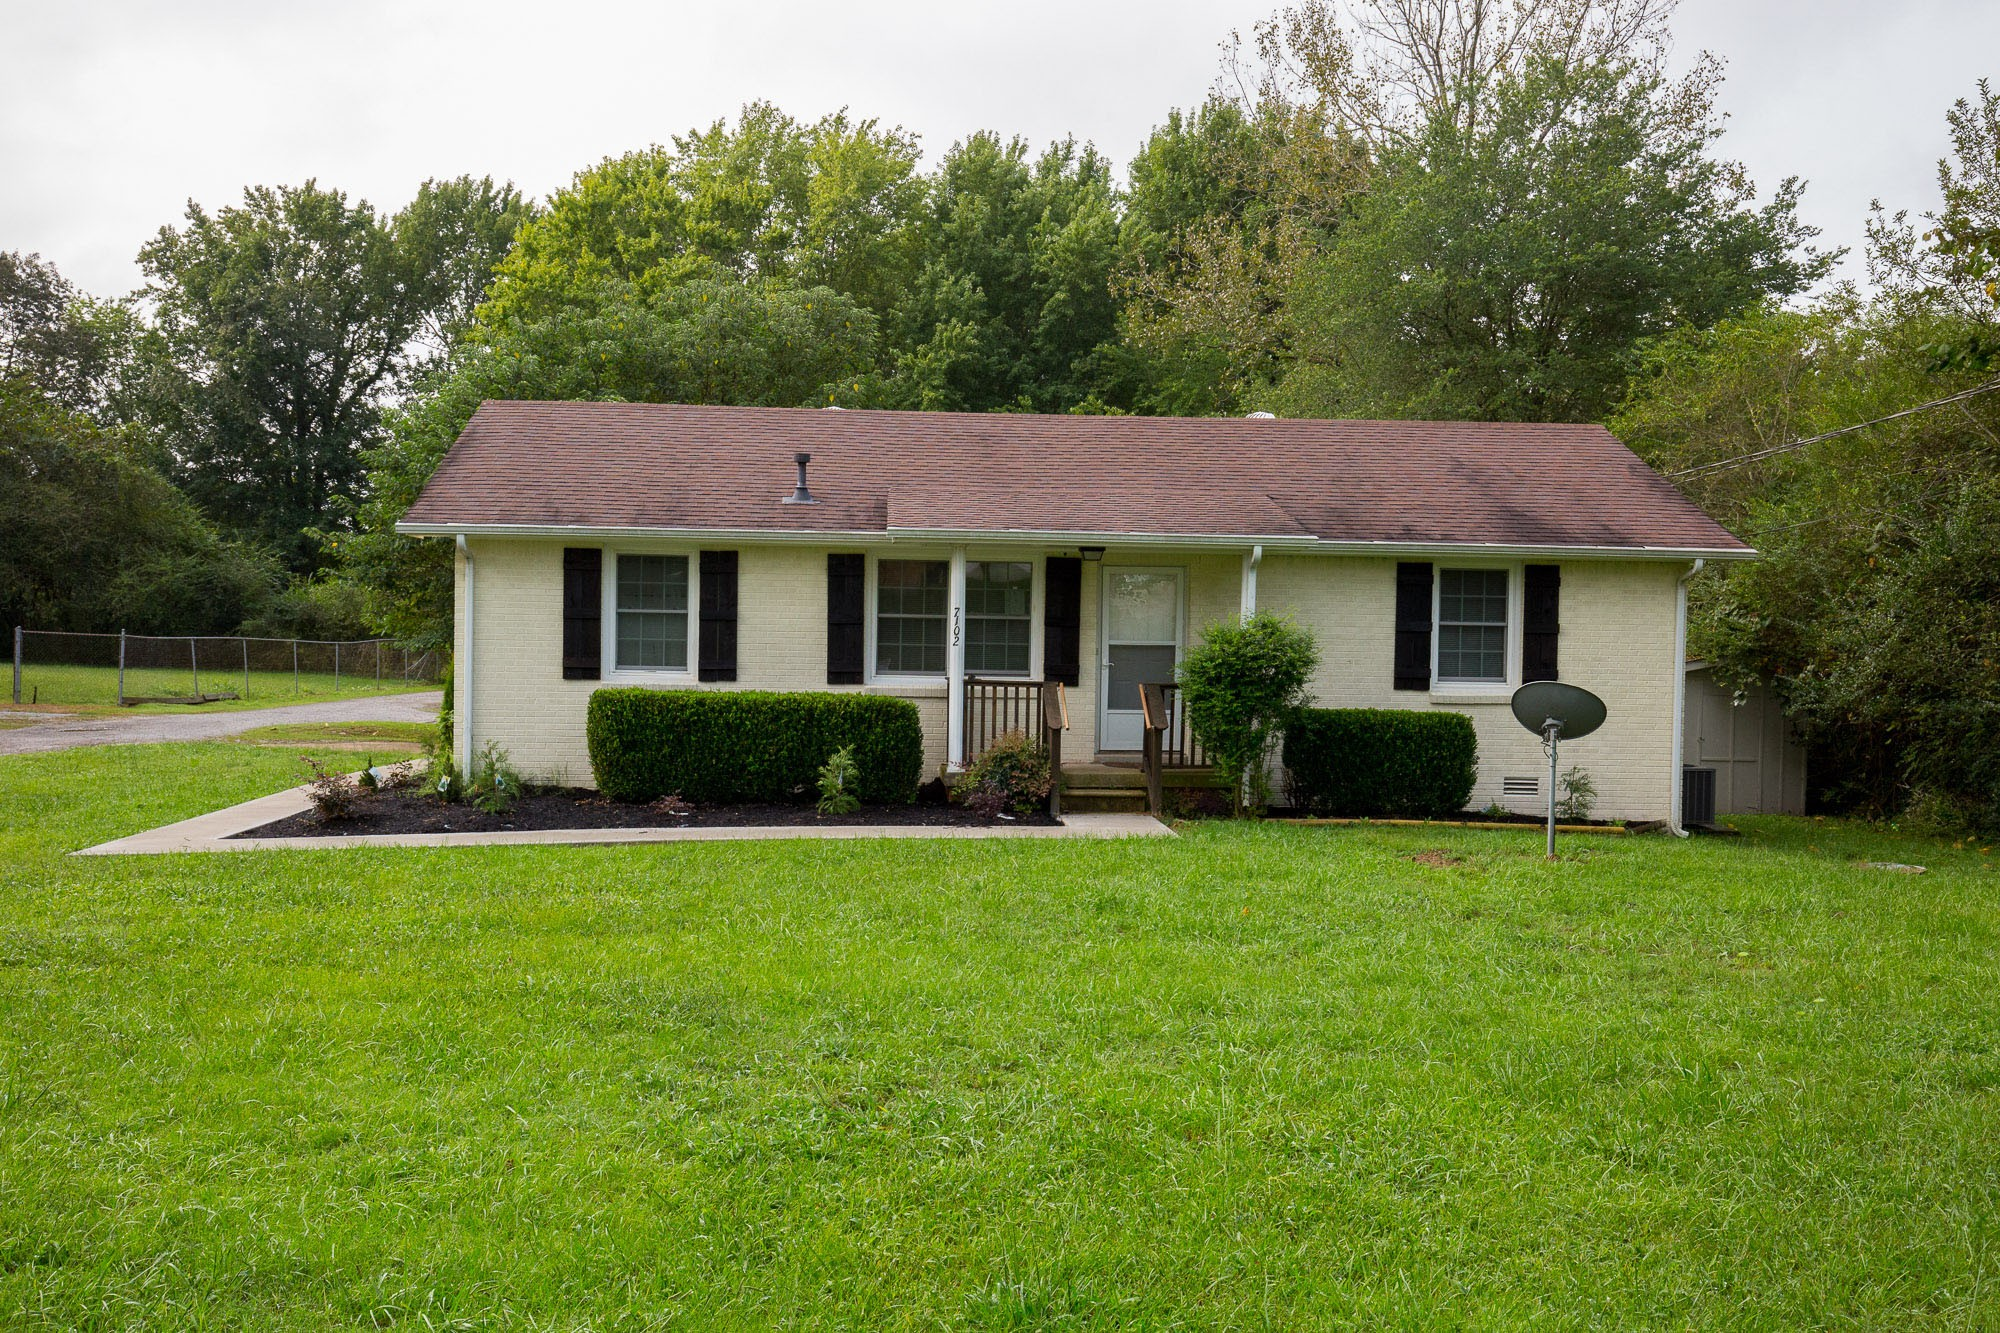 NEW PRICE!!! Remodeled in 2020, all Brick 3 Bedroom, 2 Full Bath Home and is Move-In Ready! Conveniently located near Publix, Walmart and Restaurants. Enjoy the near by Bowie Nature Park.